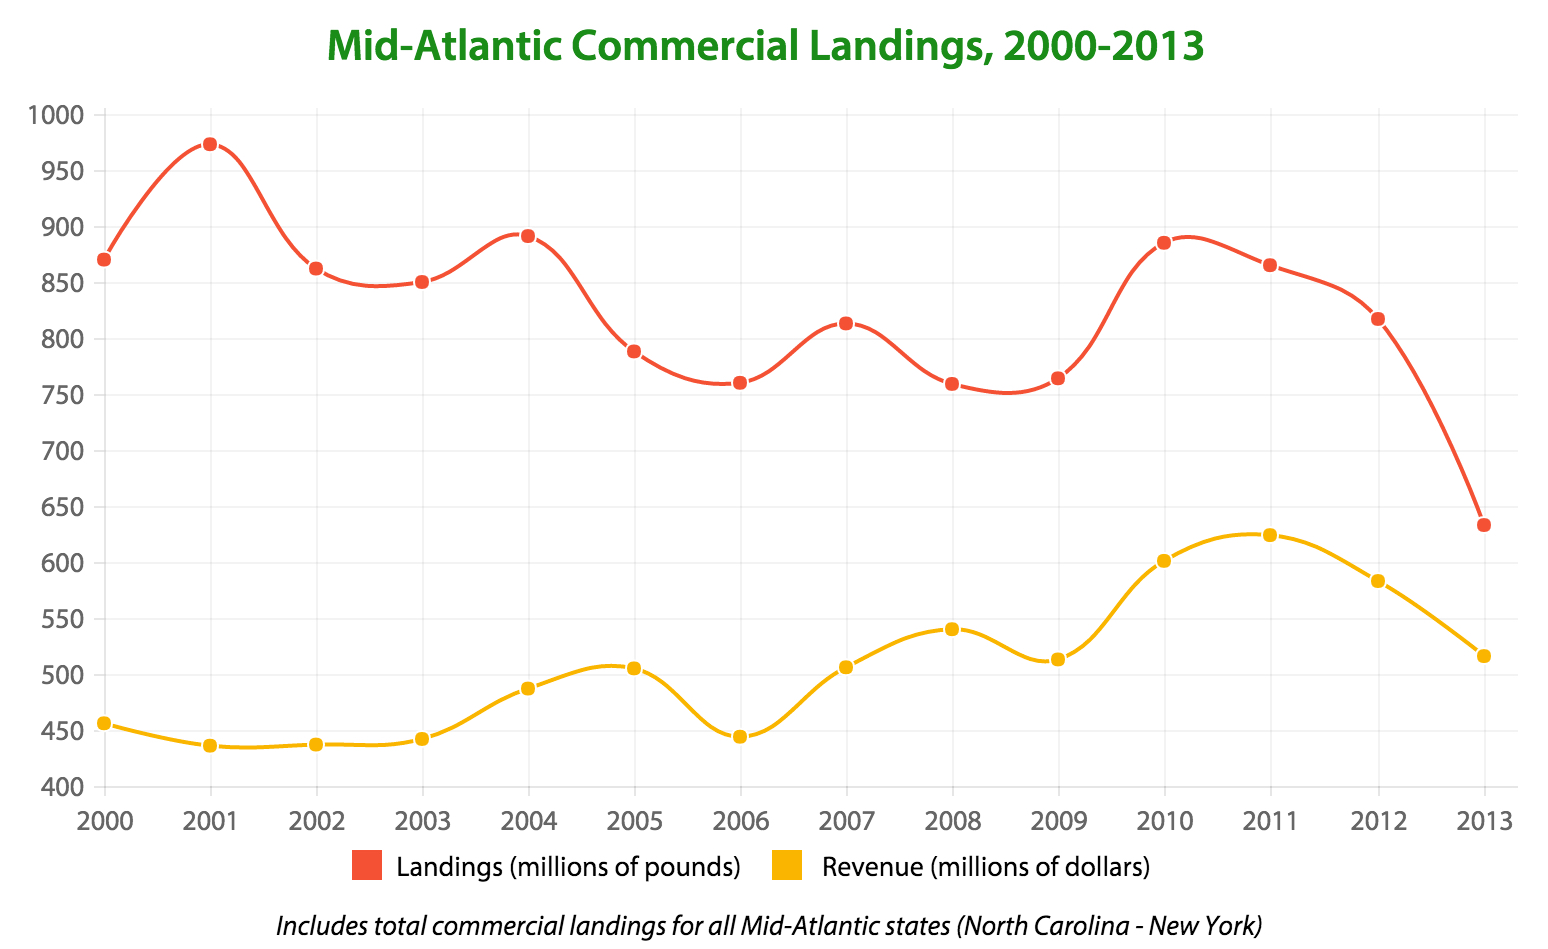 Mid-Atlantic Commercial Landings, 2000-2013 (Source: MAFMC)